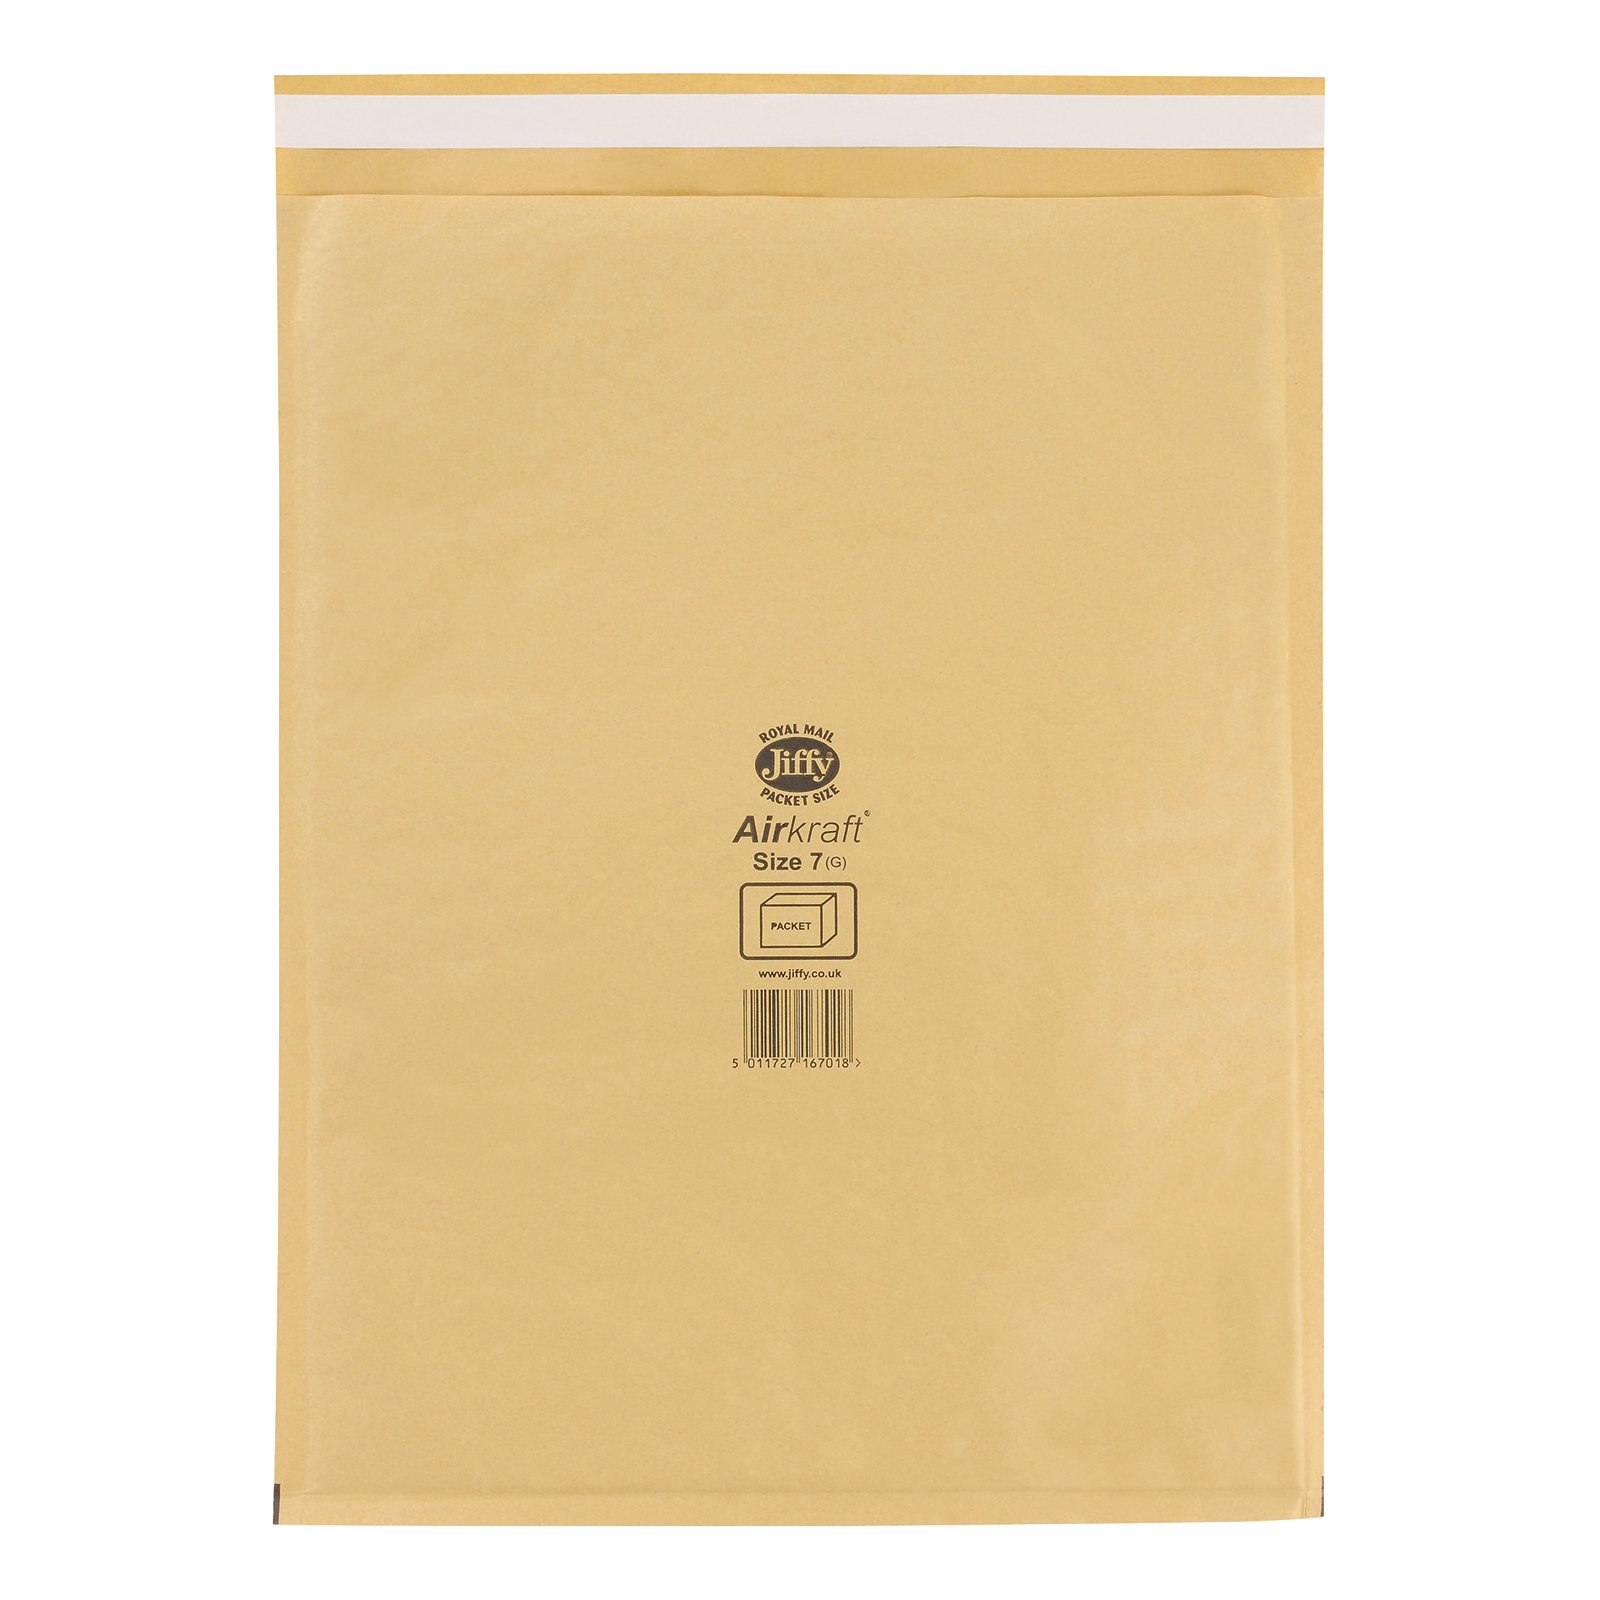 Jiffy Airkraft Bubble Bag Envelopes Size 7 Gold 340x445mm Ref JL-GO-7 Pack 50